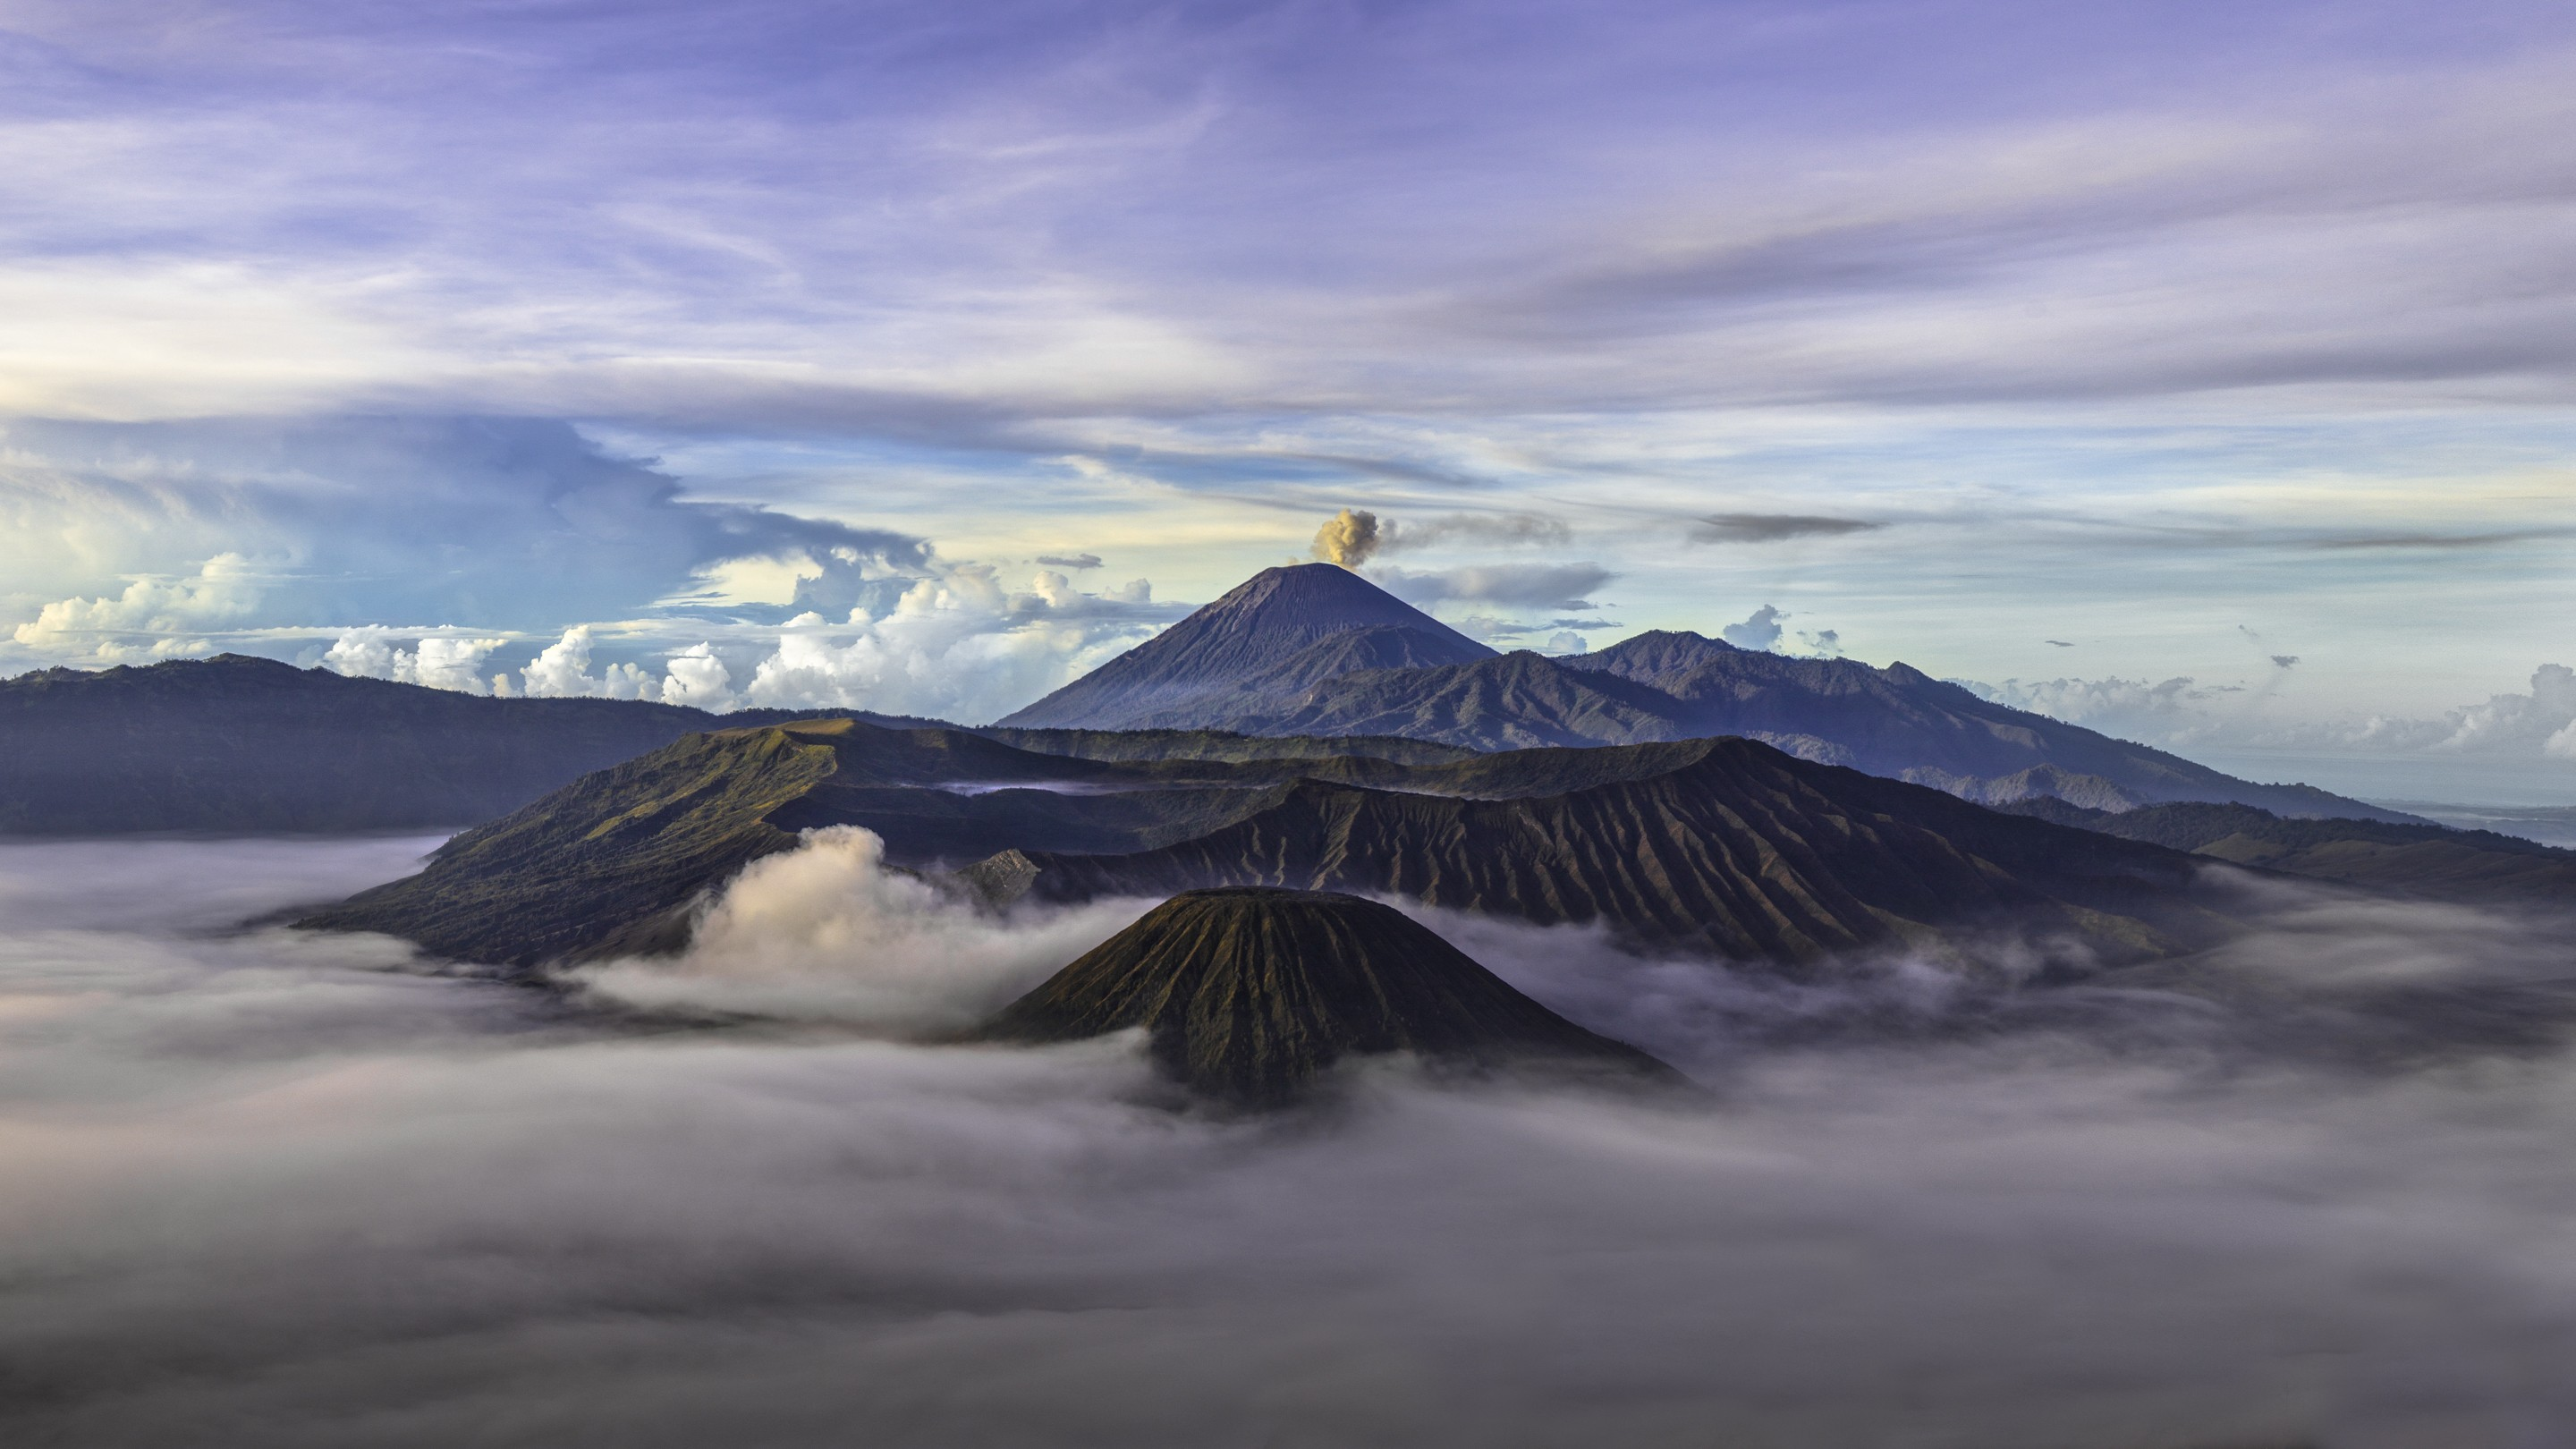 Mount bromo hd wallpaper background image 2880x1620 id 581184 wallpaper abyss - 2880x1620 wallpaper ...